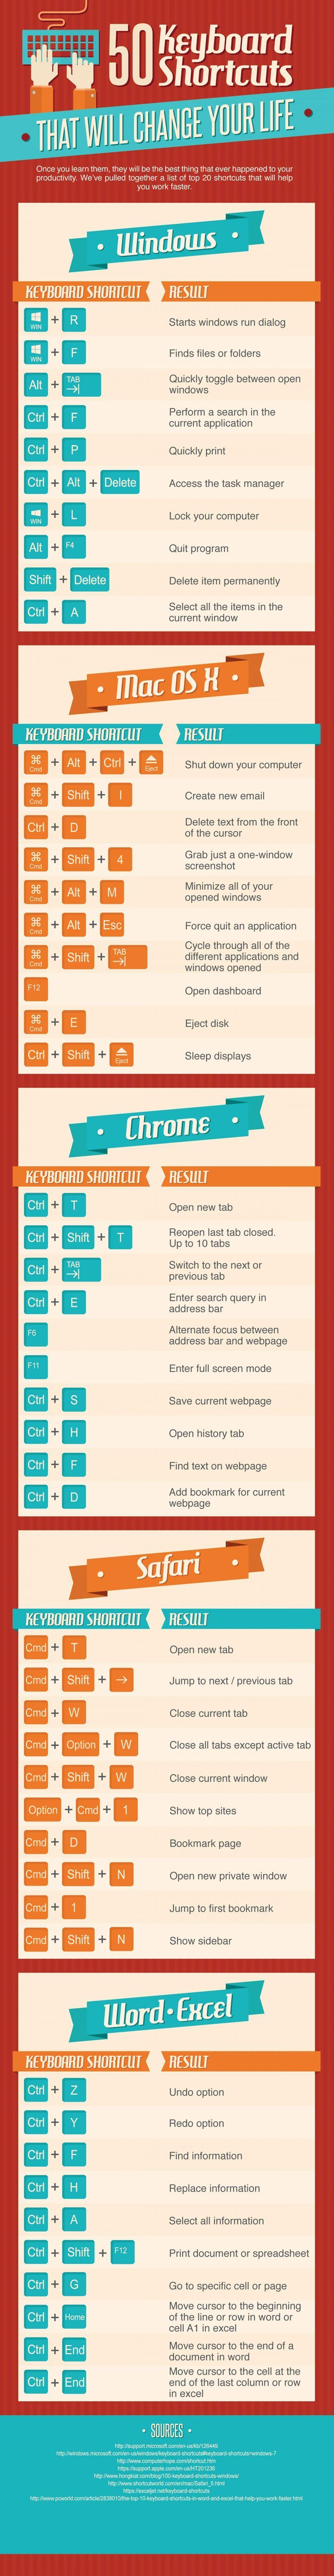 50 Keyboard shortcuts